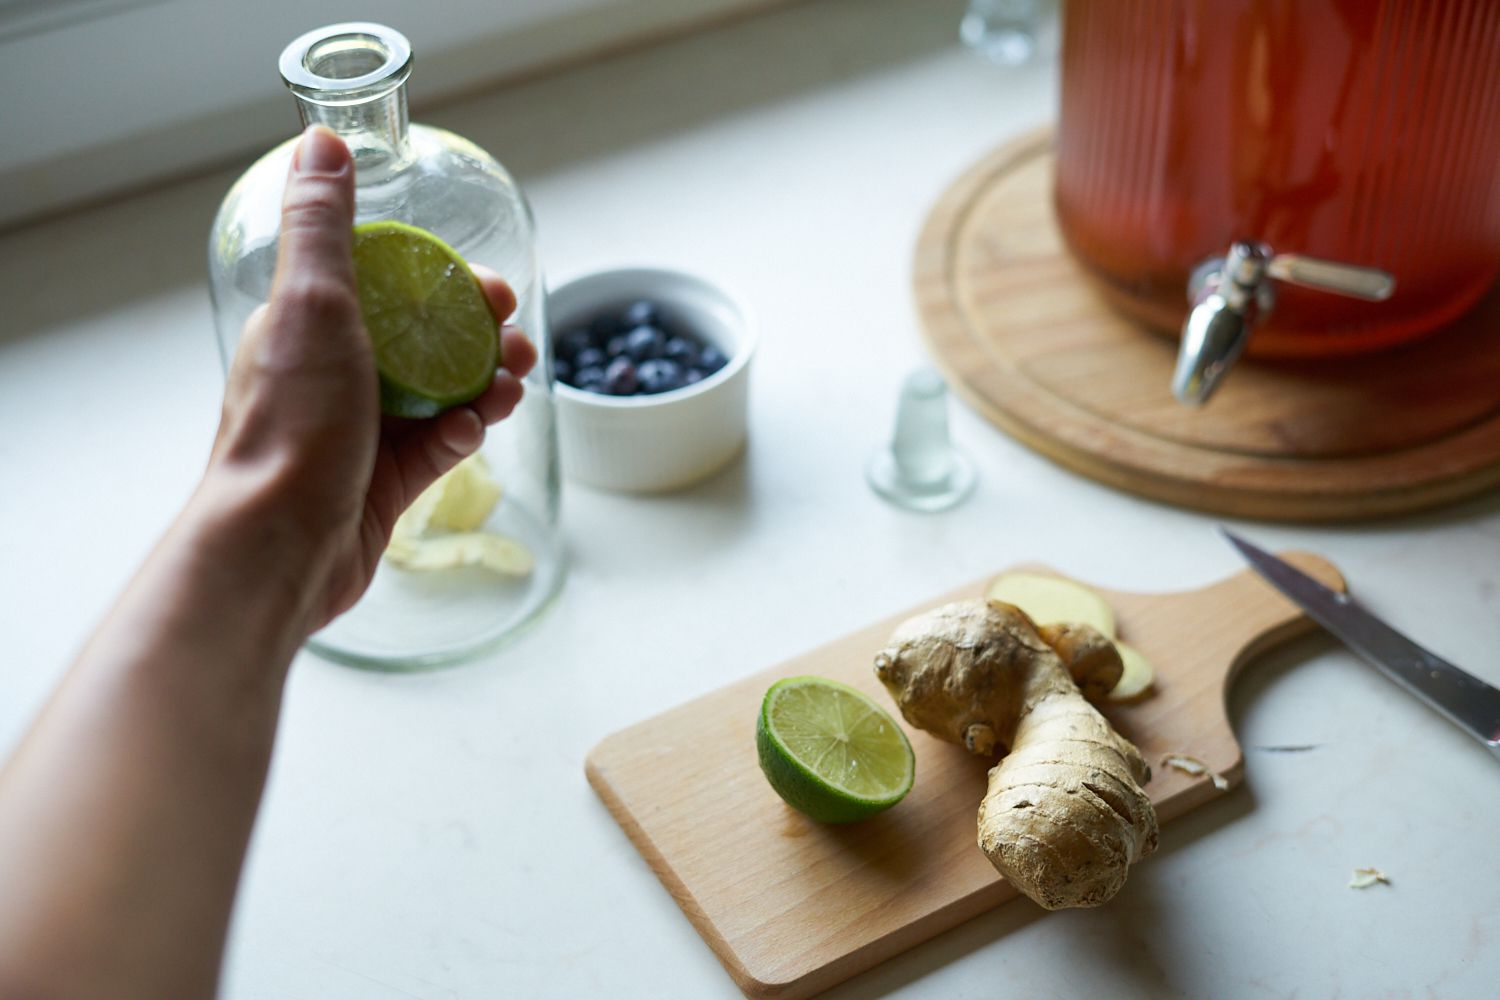 ginger, limes, and berries are on a cutting board to be added to homemade kombucha